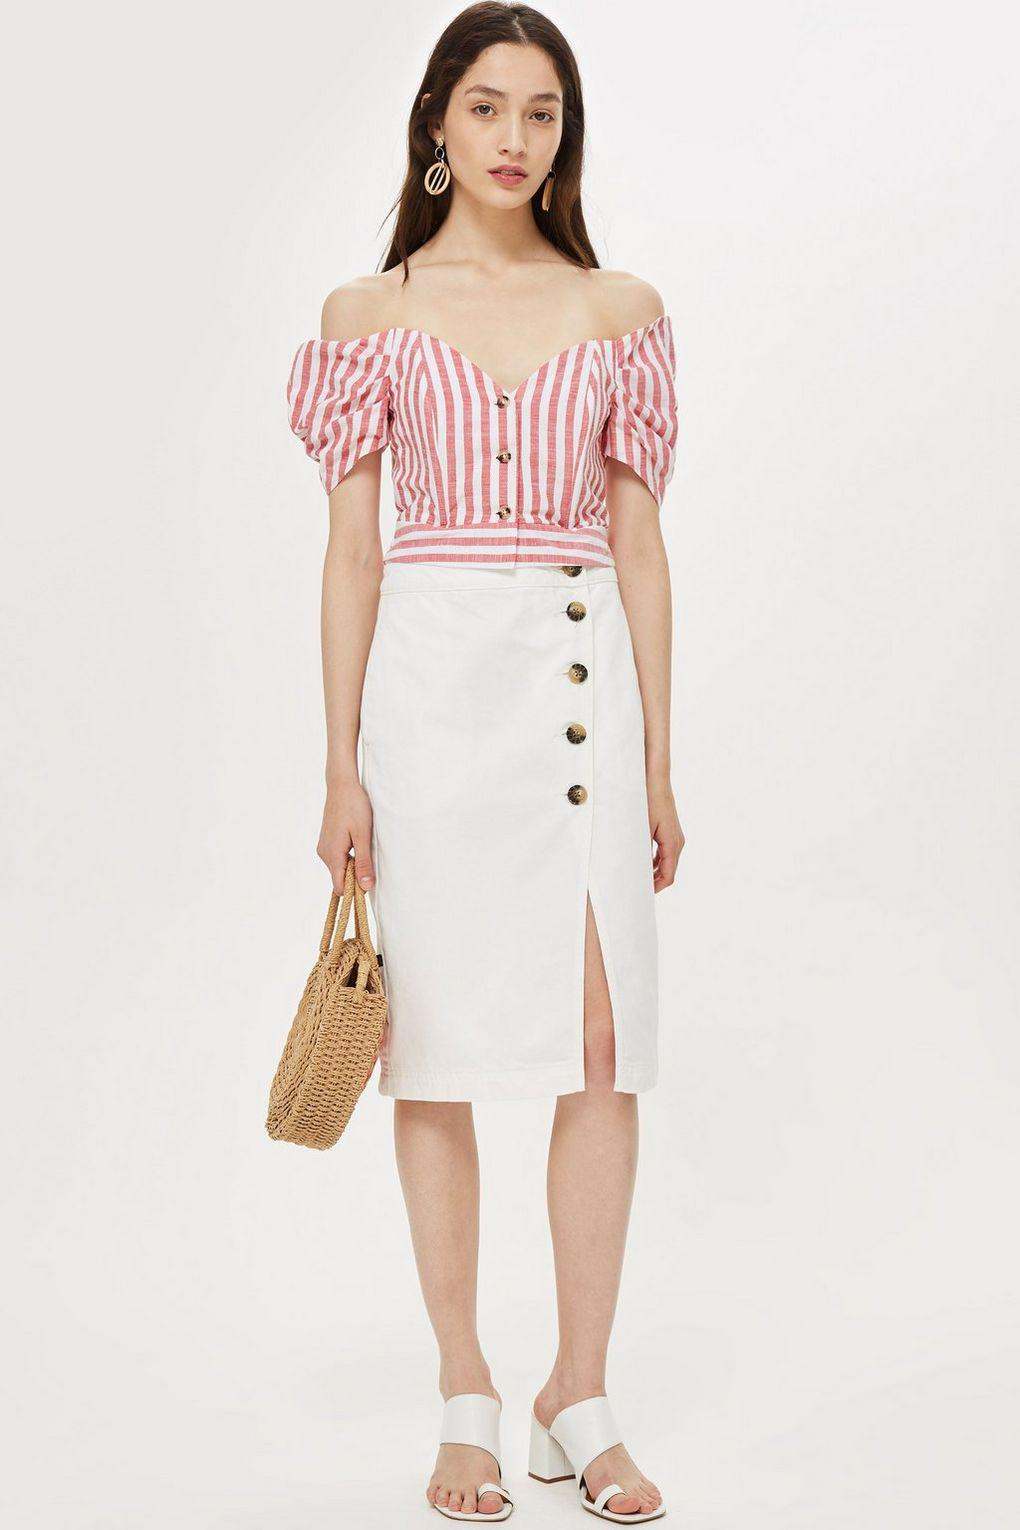 a5c77638a6bc0 Lyst - TOPSHOP Petite Stripe Puff Sleeve Bardot Top in Pink